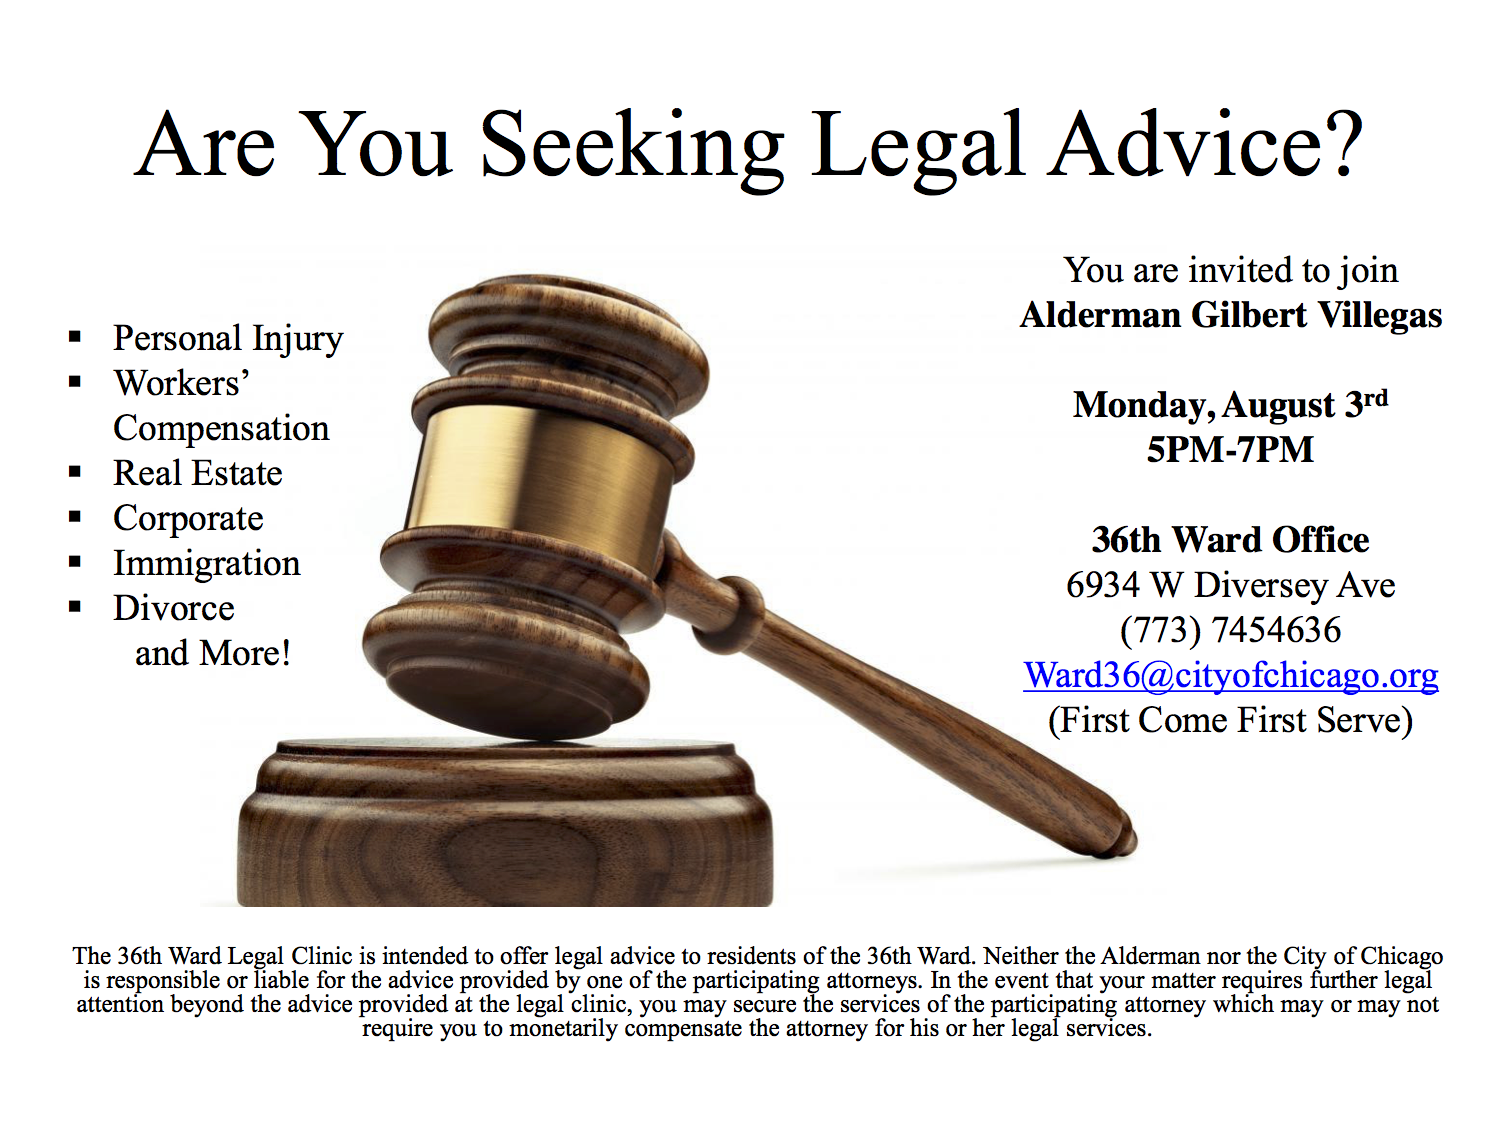 Are_You_Seeking_Legal_Advice.png